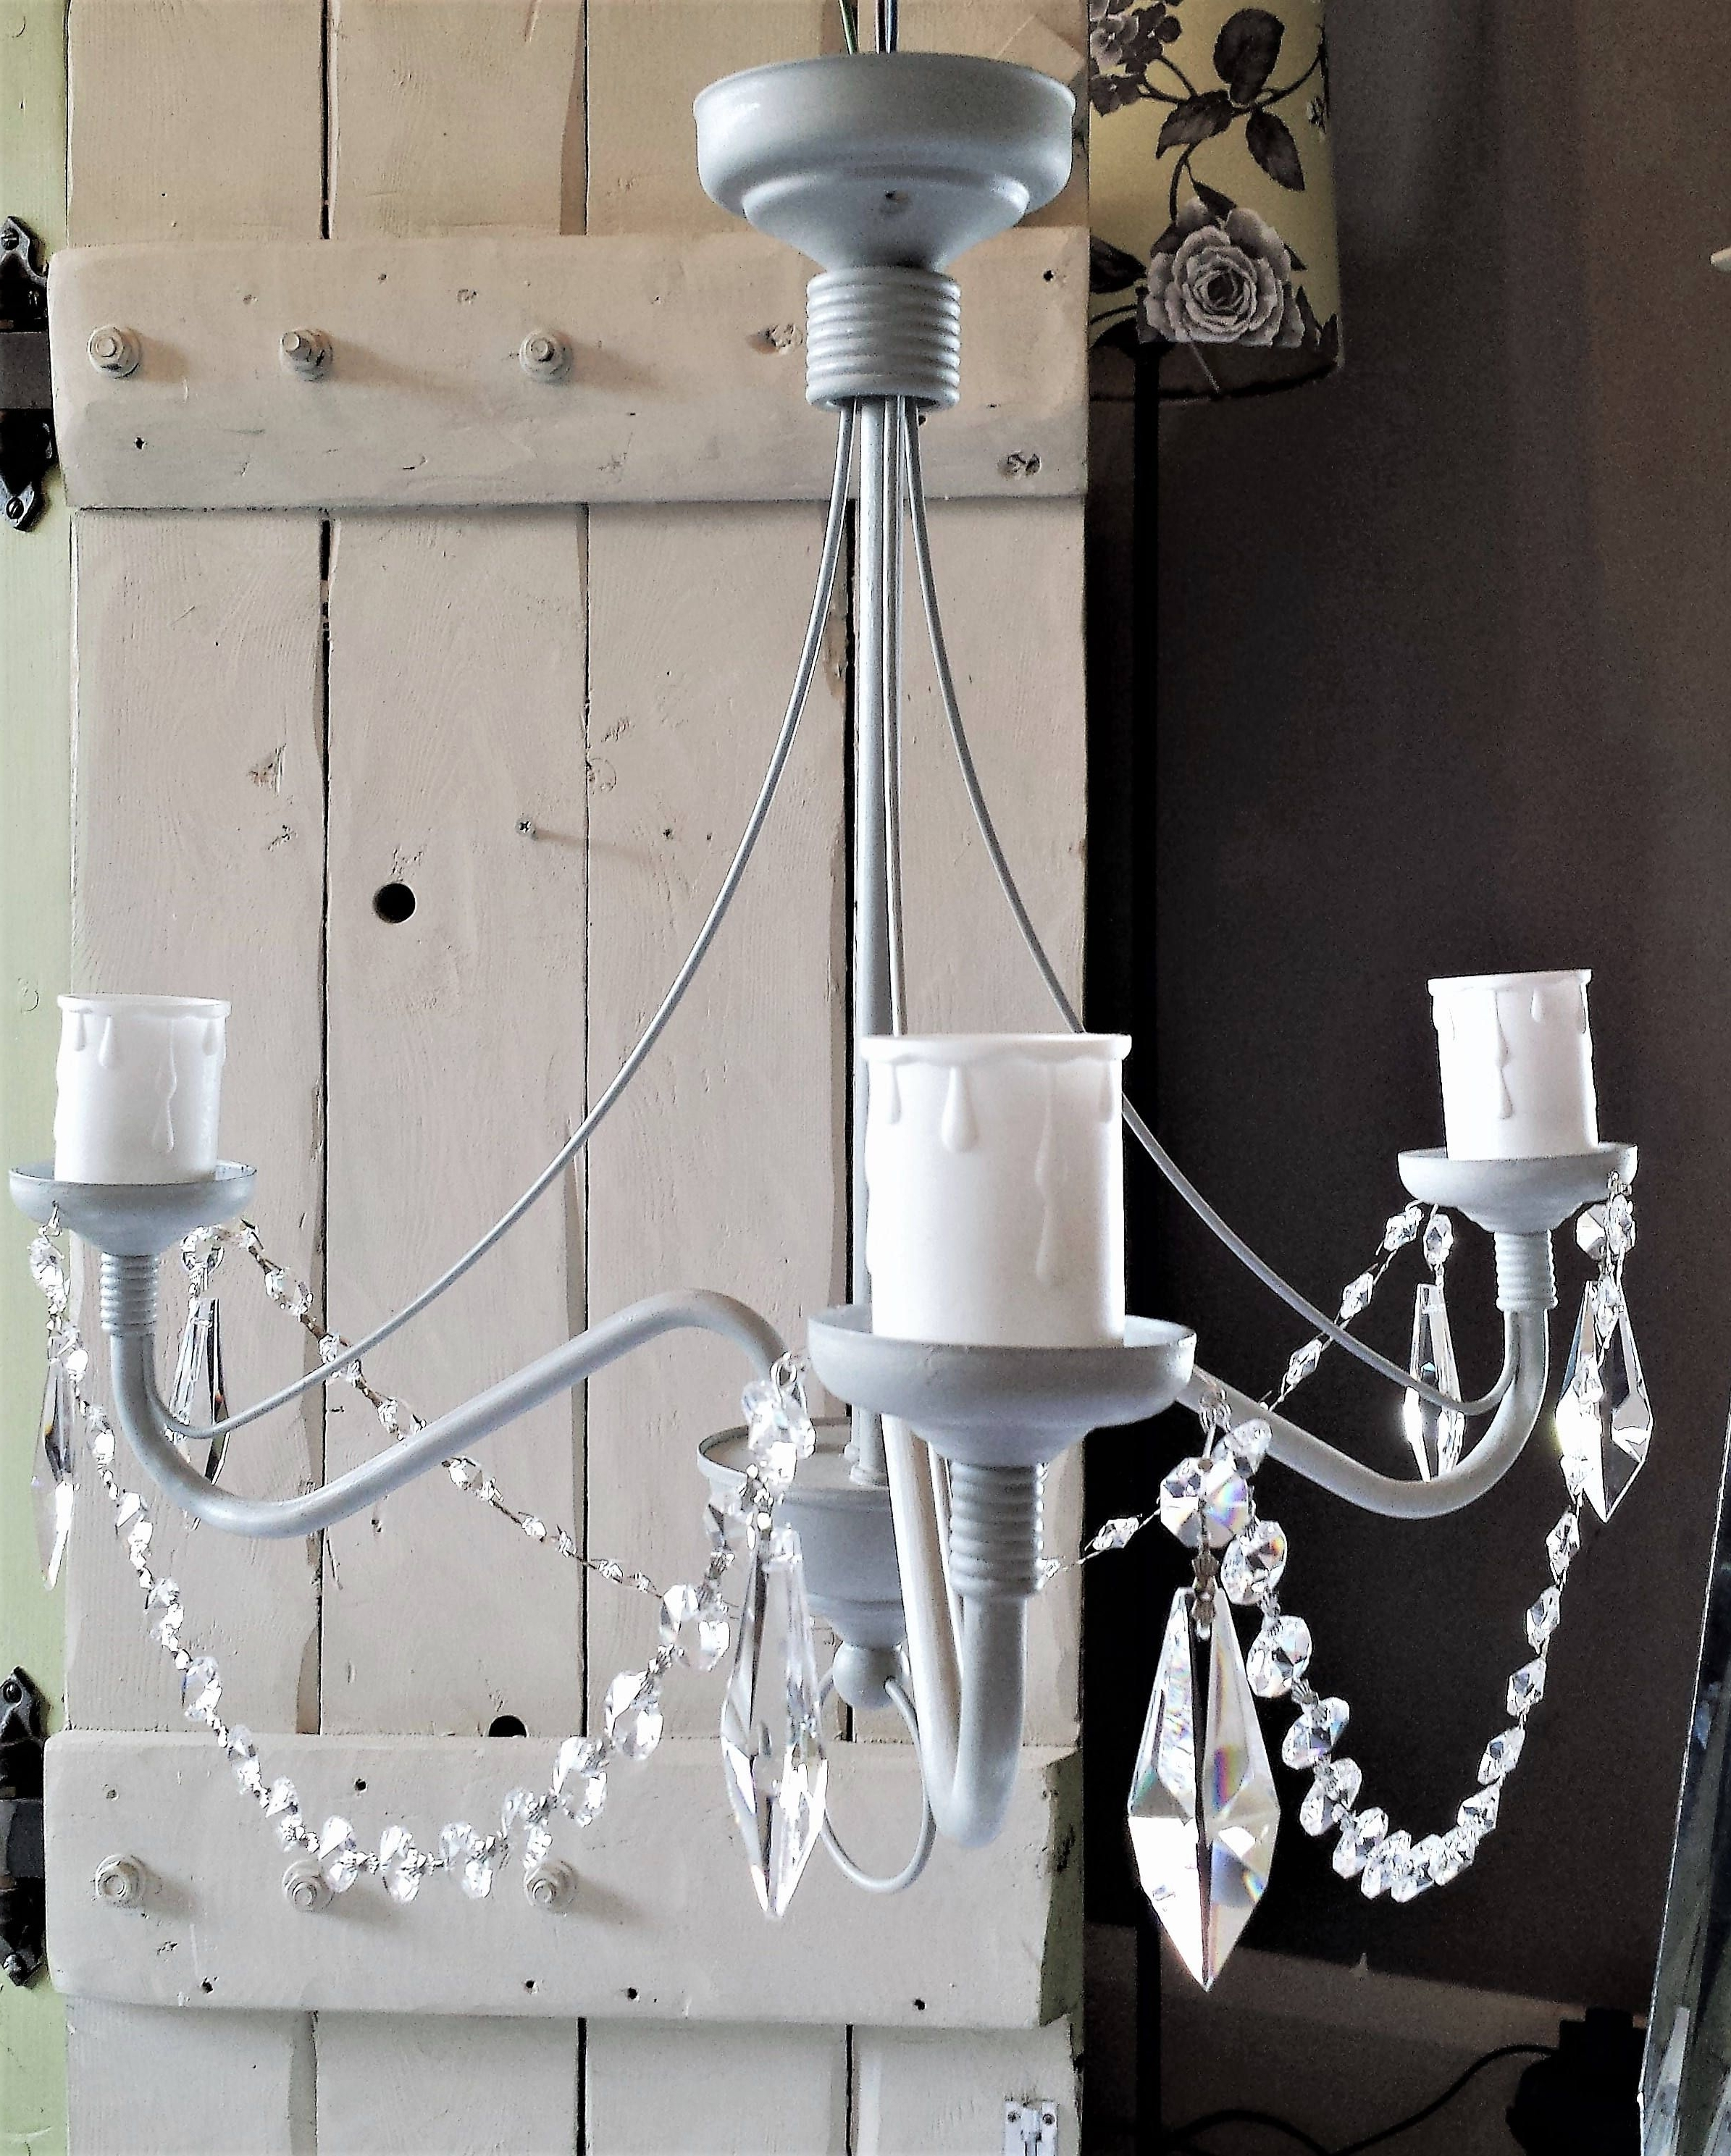 Grey Chandeliers For Preferred Paris Grey Chandelier Light Fixture, Upcycled Shabby Chic Flush (View 12 of 20)